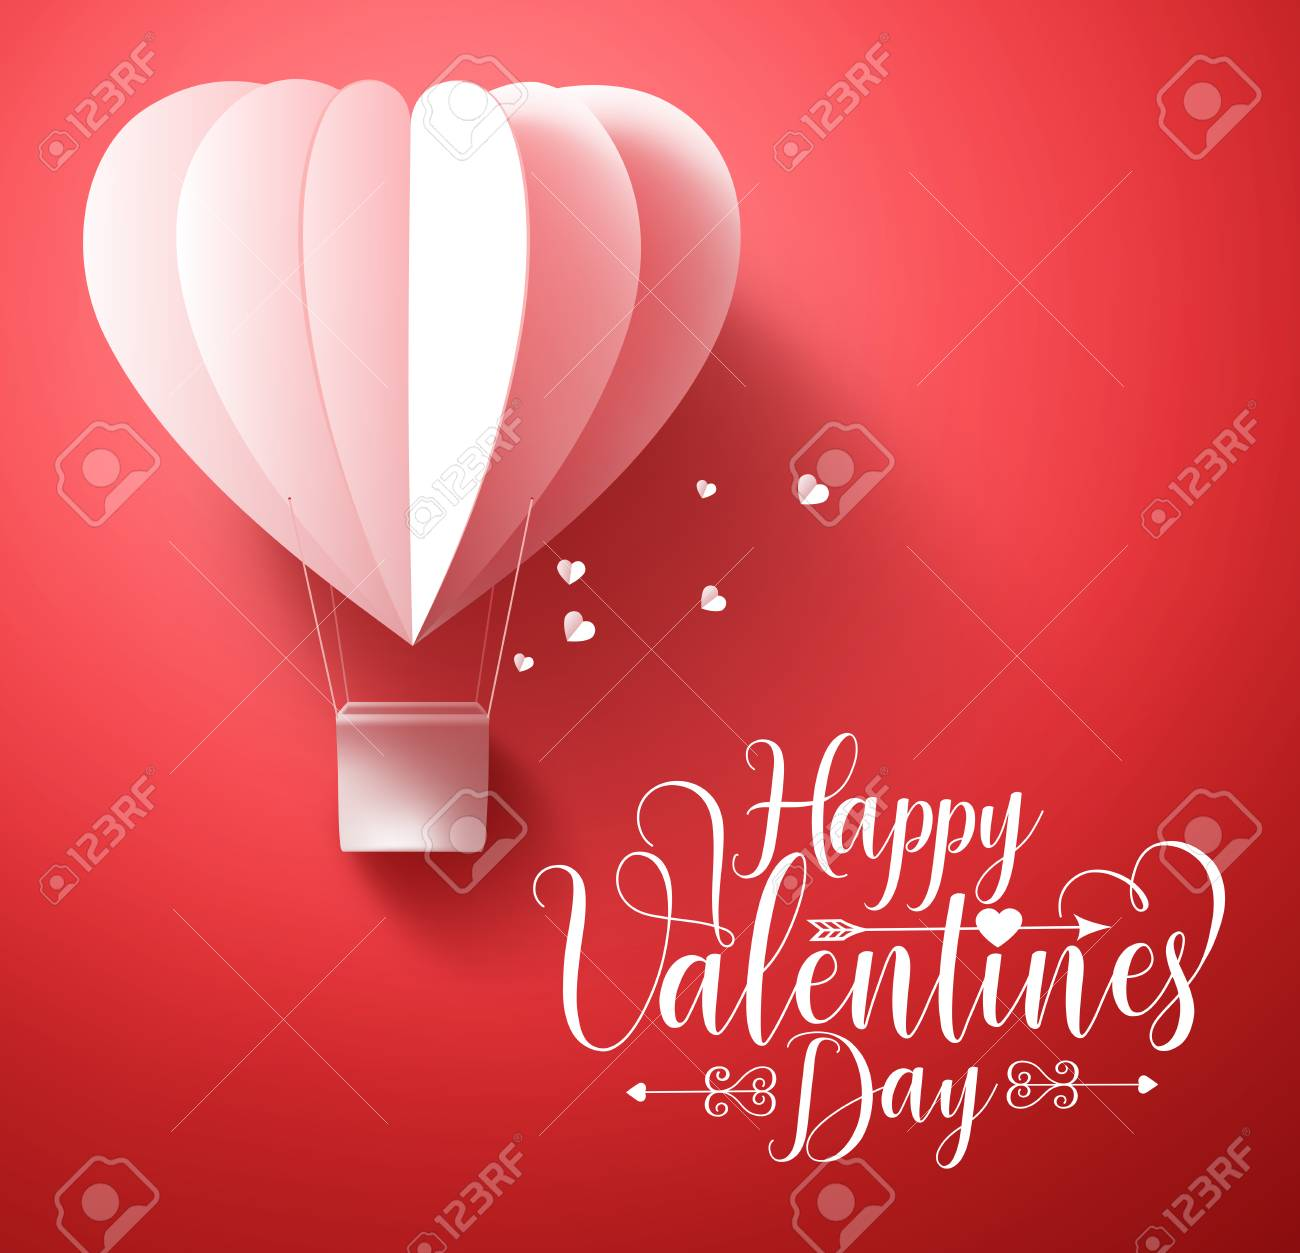 Happy valentines day vector greetings card design with 3d realistic happy valentines day vector greetings card design with 3d realistic paper cut heart shape flying balloon m4hsunfo